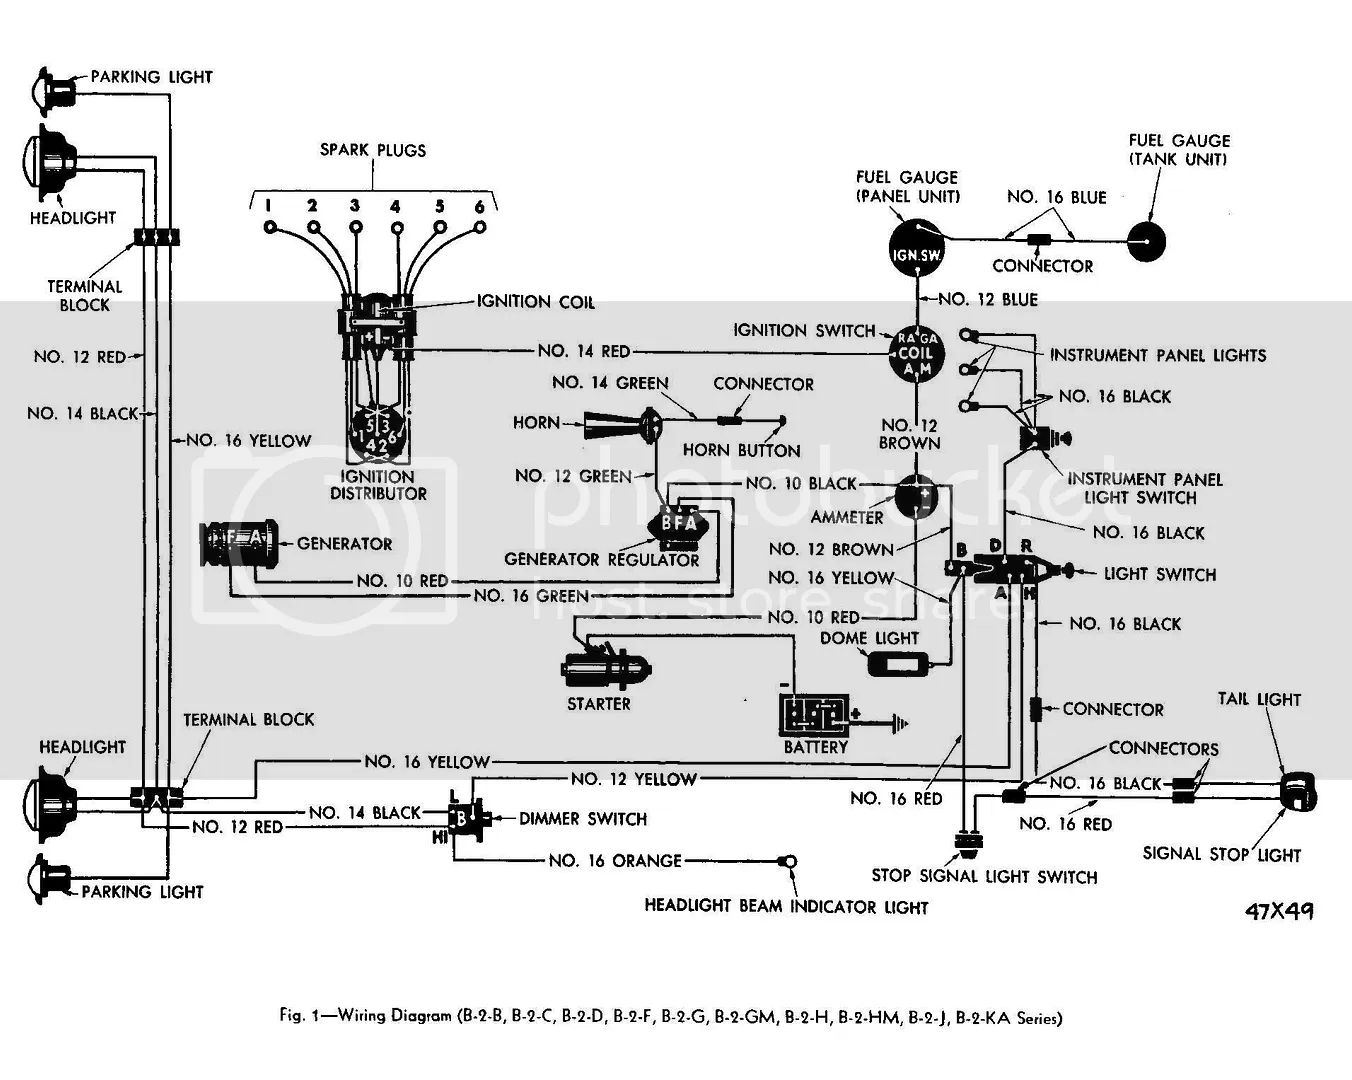 1959 willys wagon wiring diagram